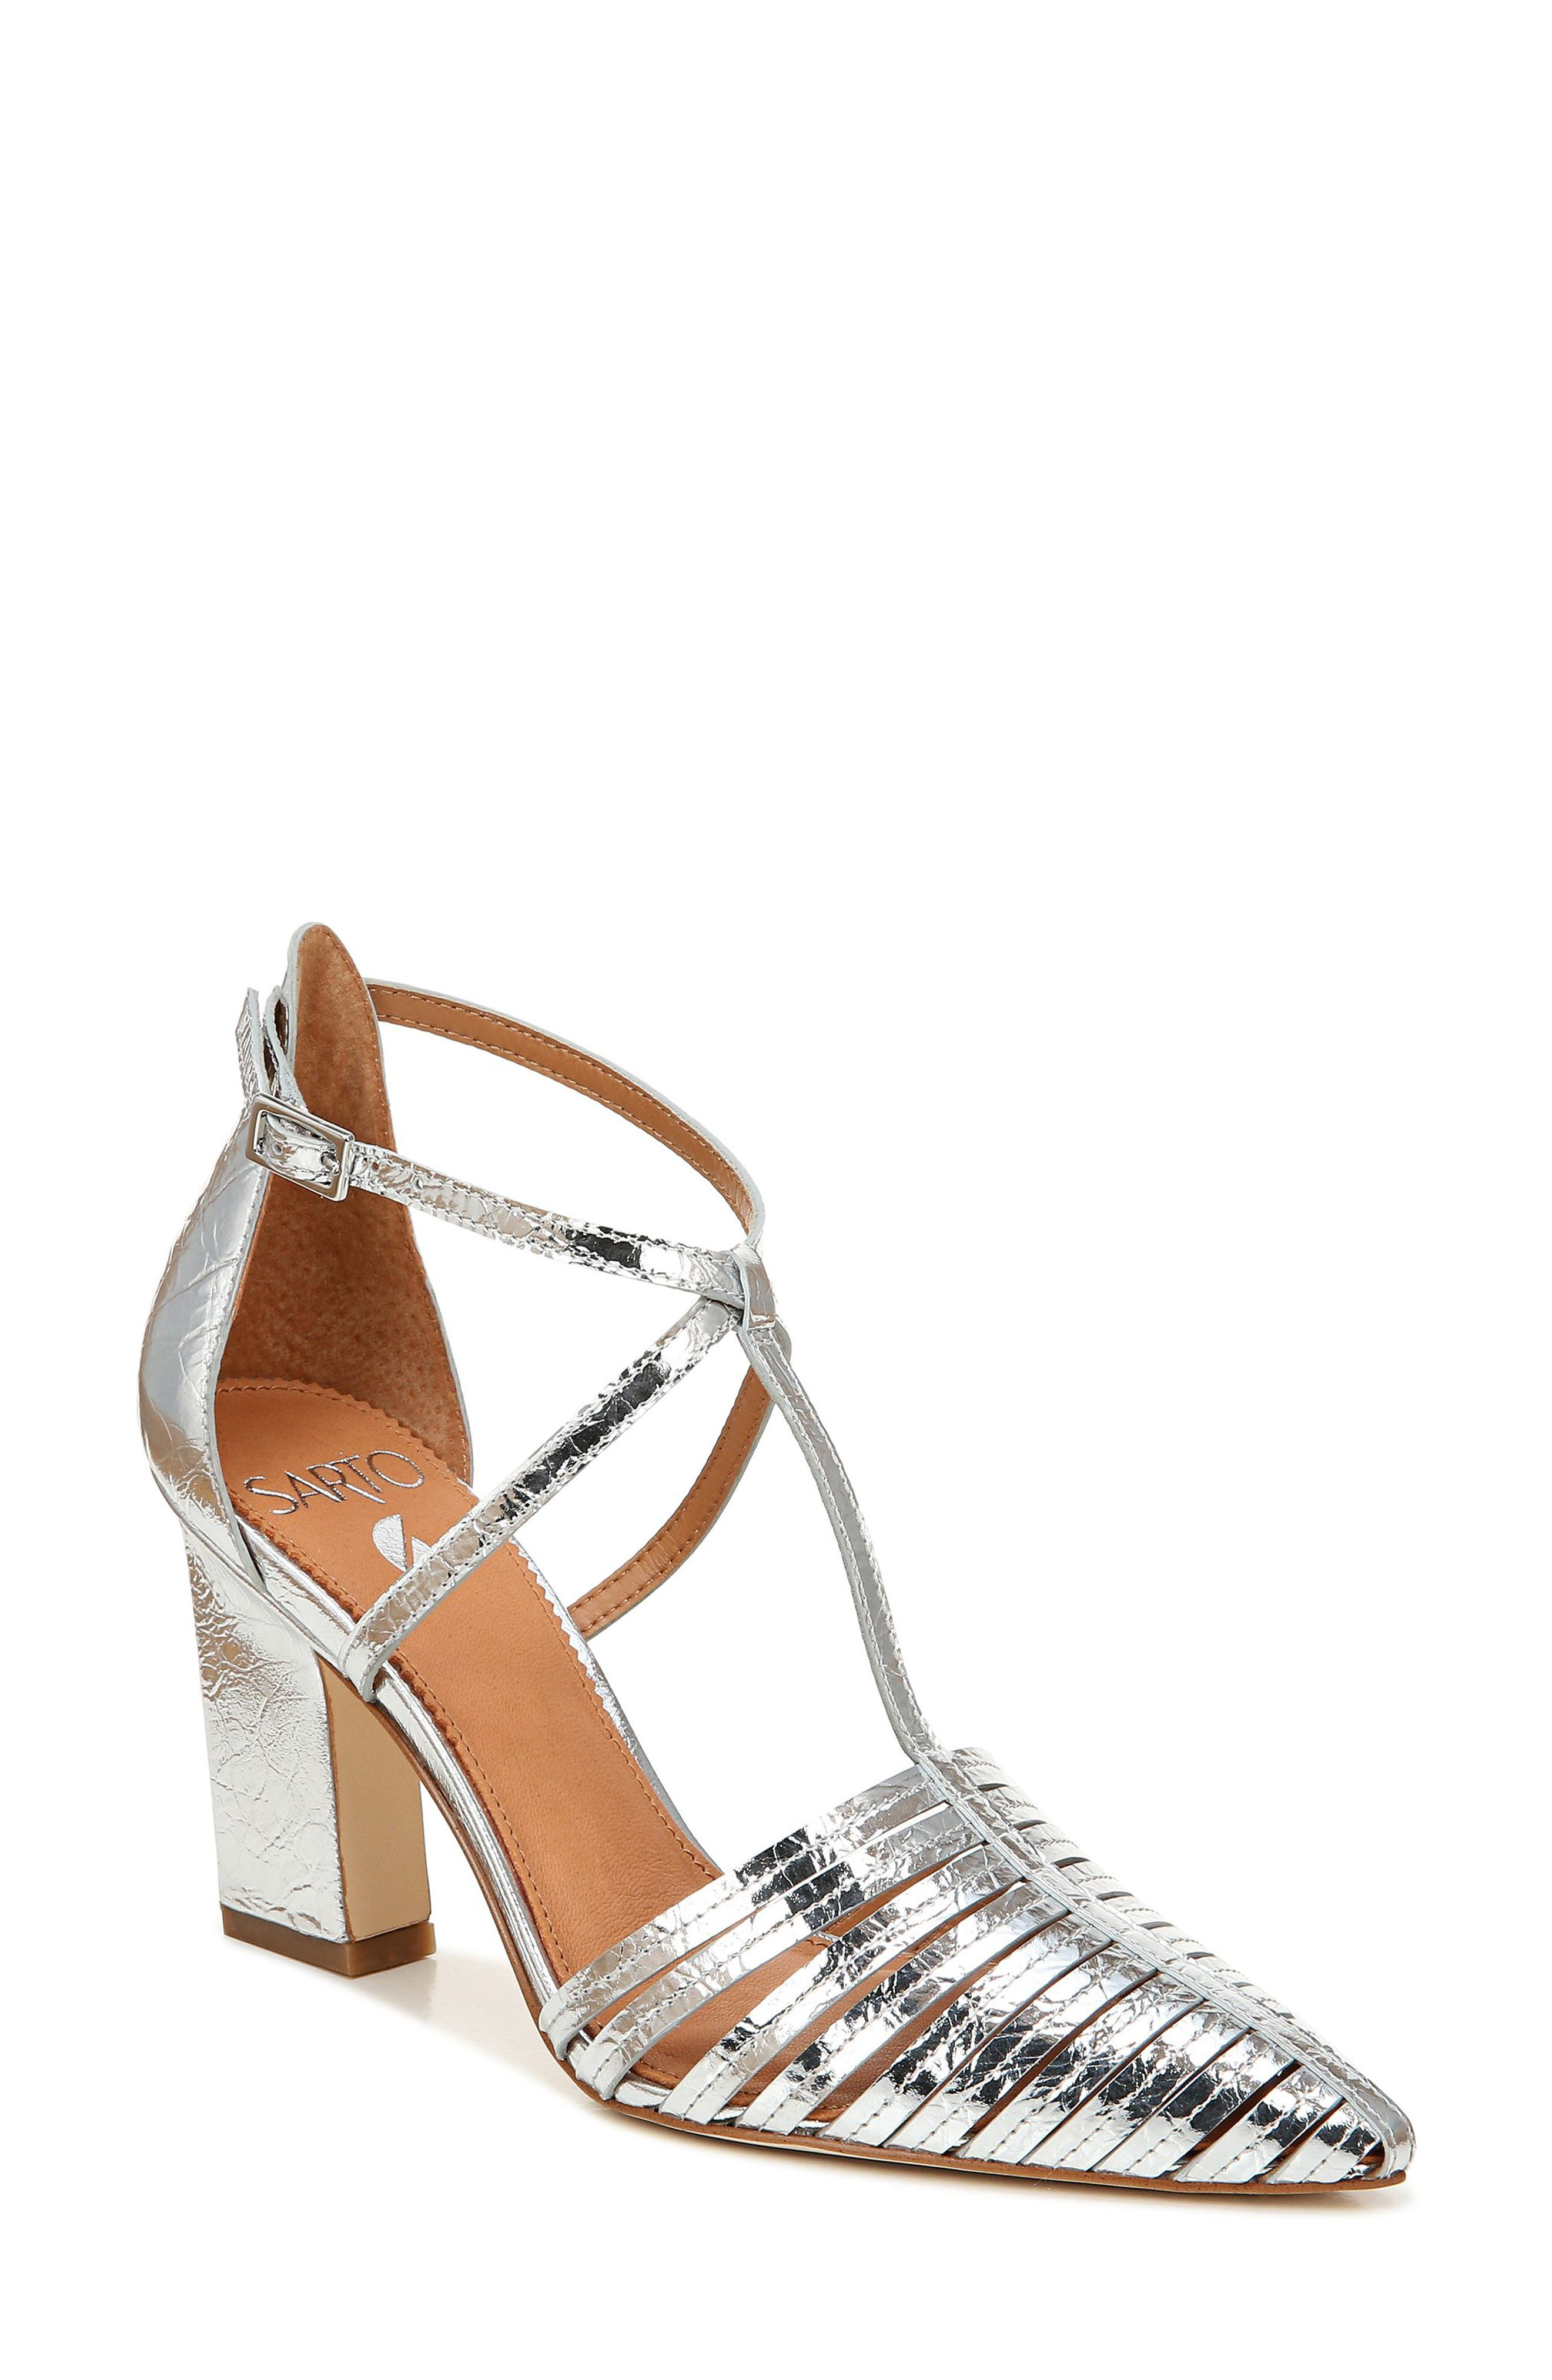 Image of SARTO BY FRANCO SARTO Saira Leather Perforated T-Strap Pump